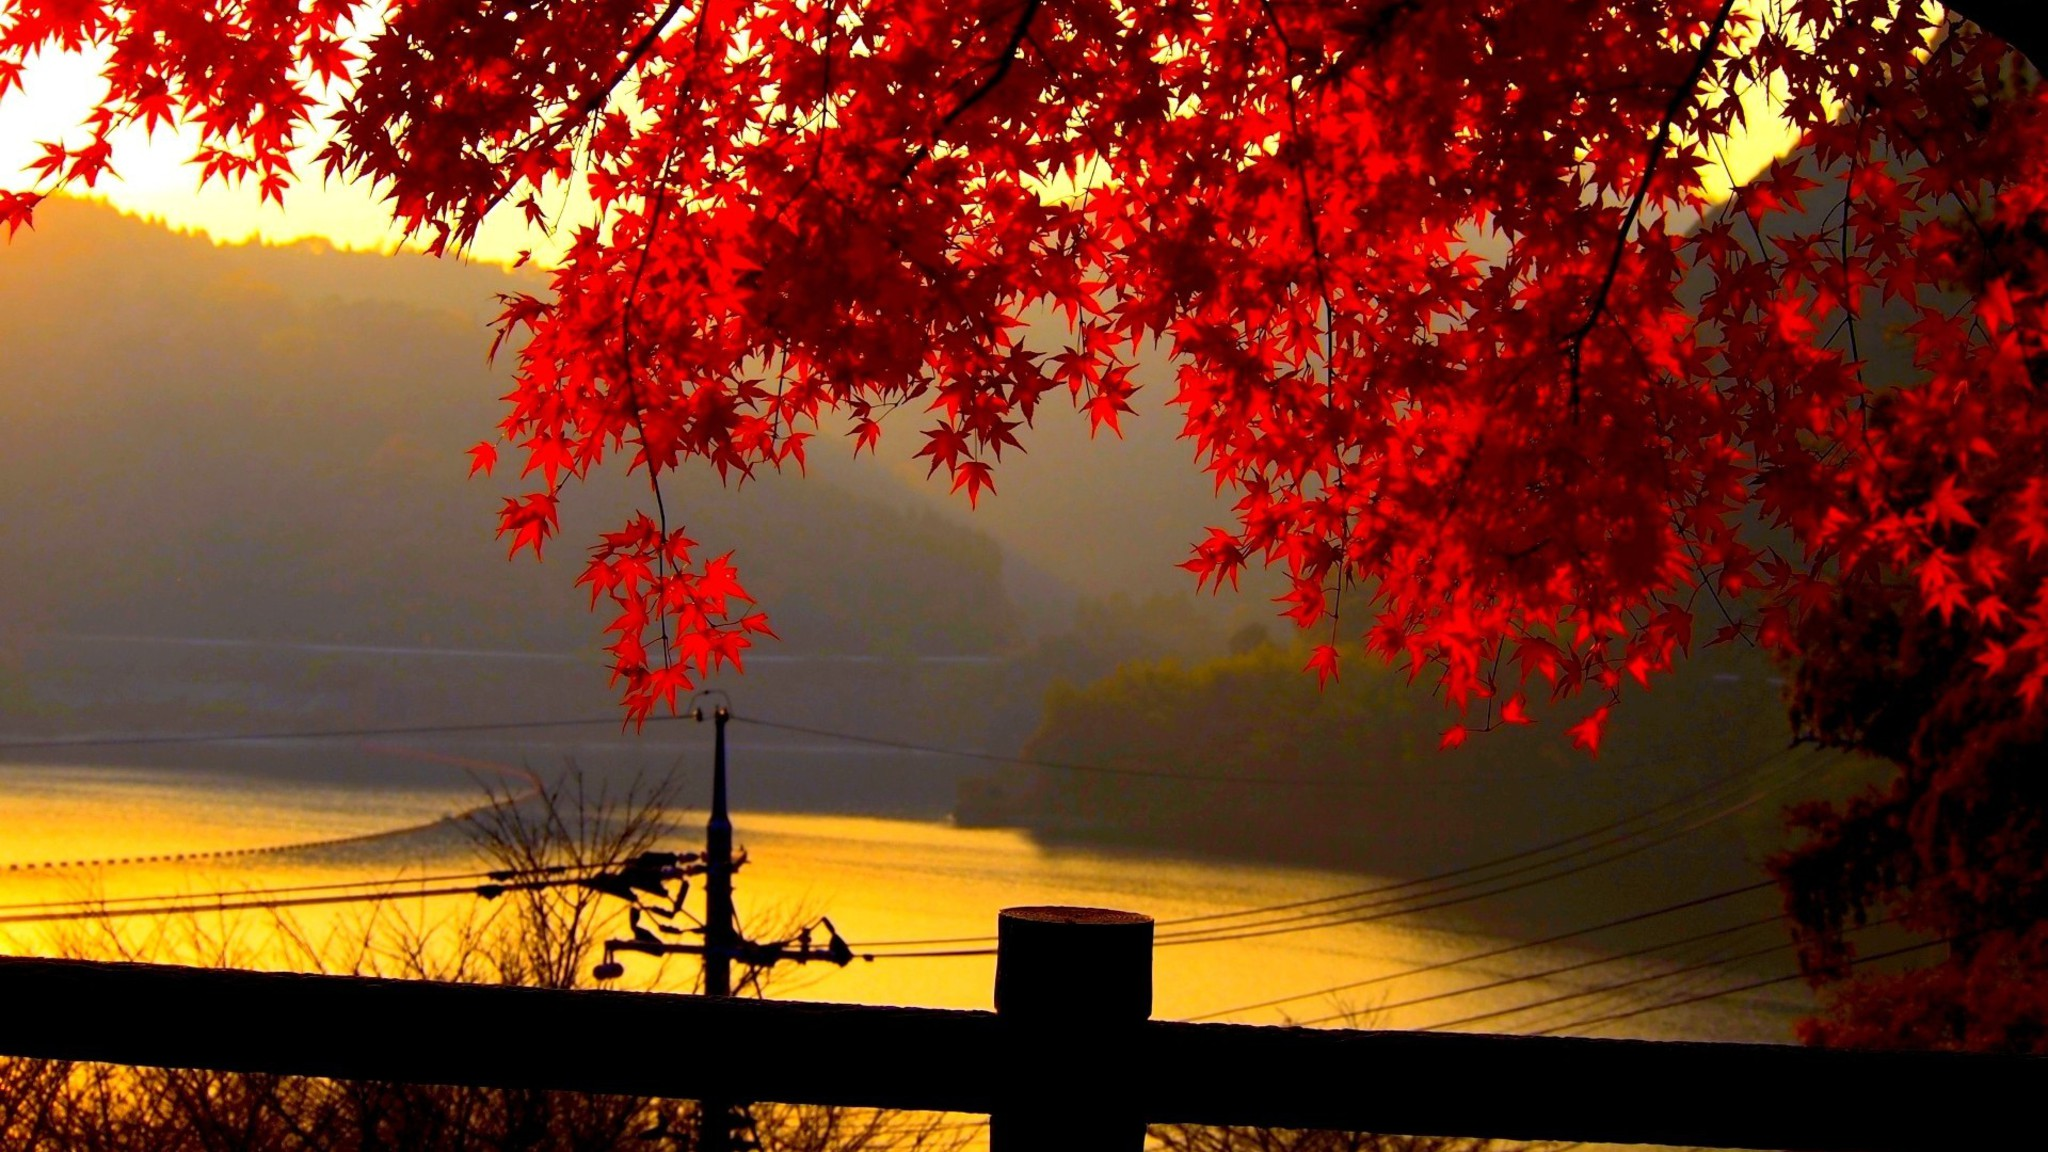 Labels Red Autumn Leaves Photography Hd Wallpapers For: Red Autumn Leaves At Dusk Wallpaper